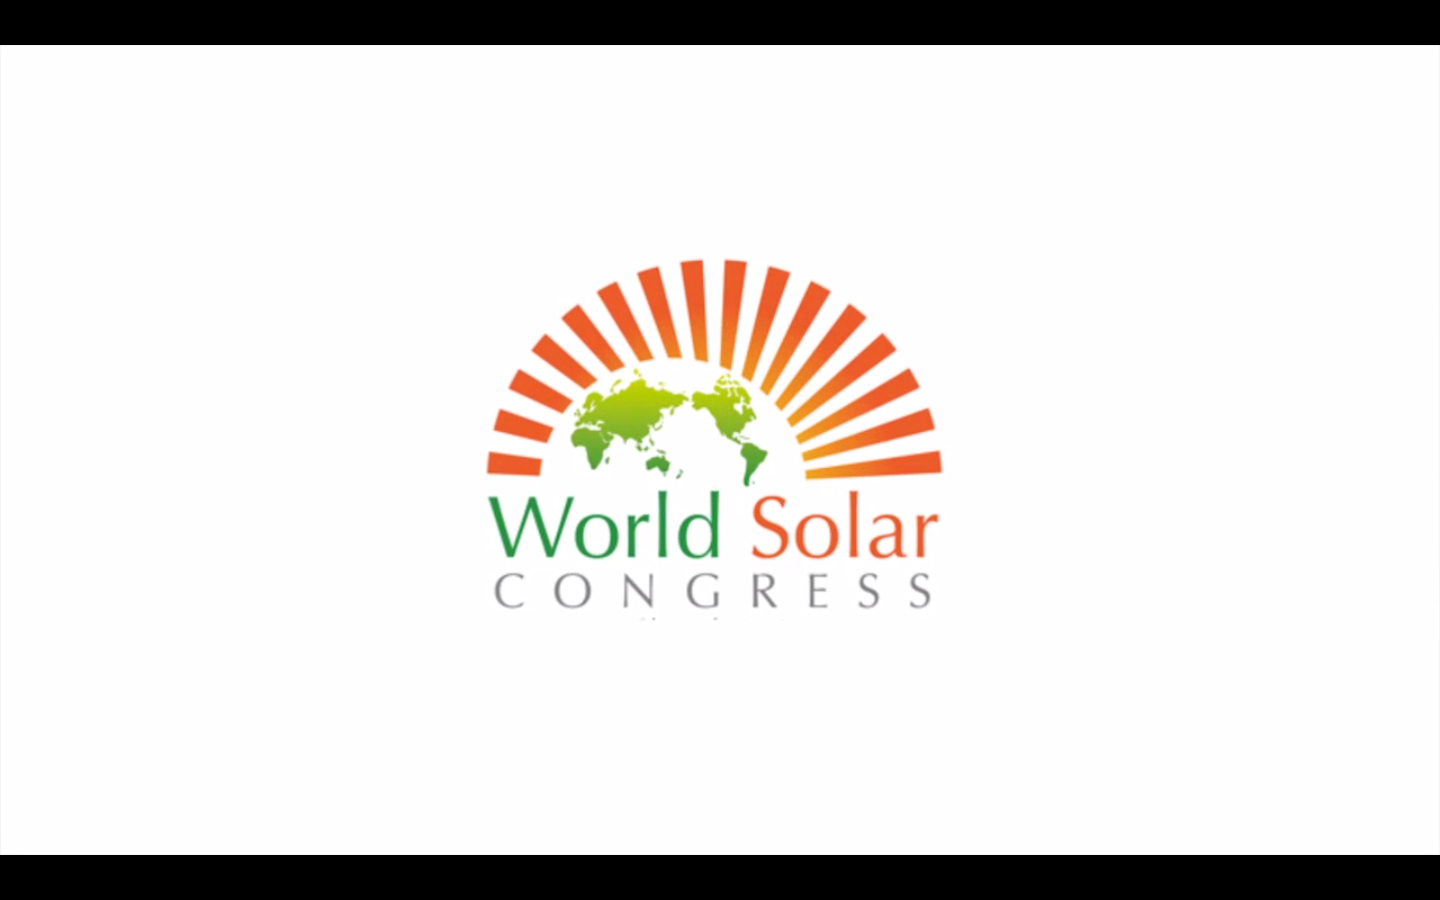 World Solar Congress 2012 in Shanghai